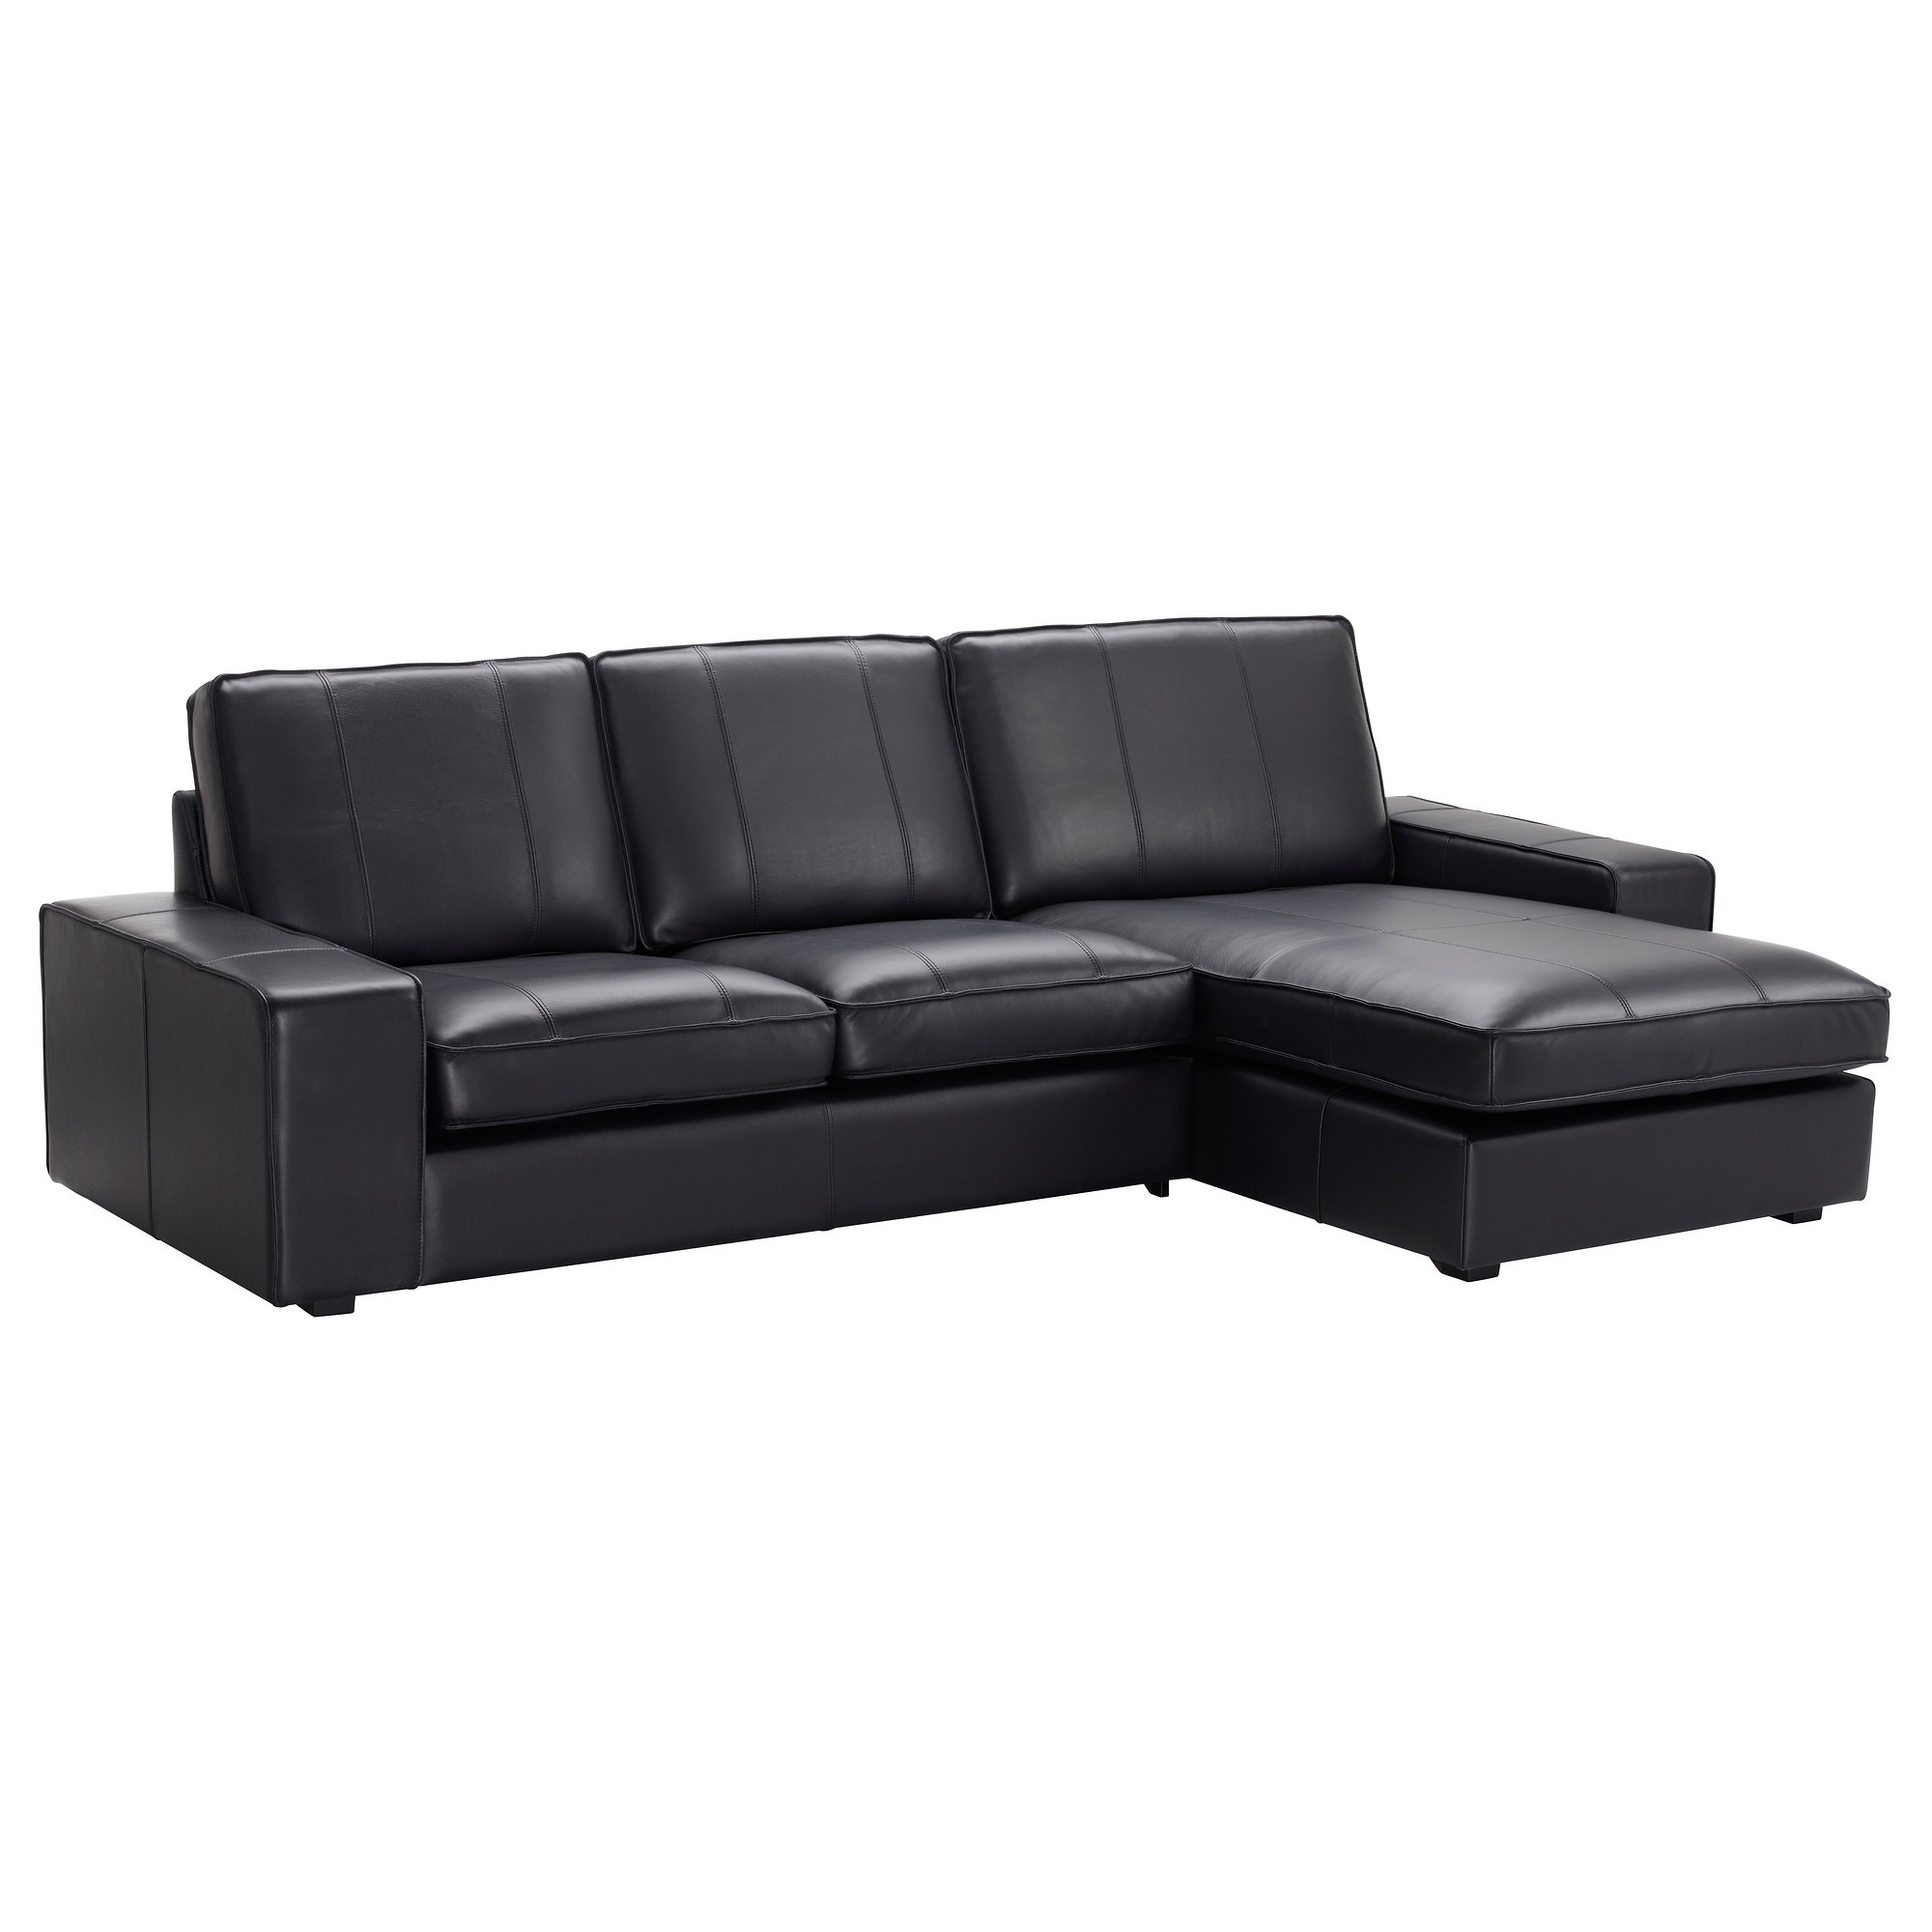 Ikea canape cuir 2 places 28 images balebo canap 233 3 for Canape cuir ikea convertible